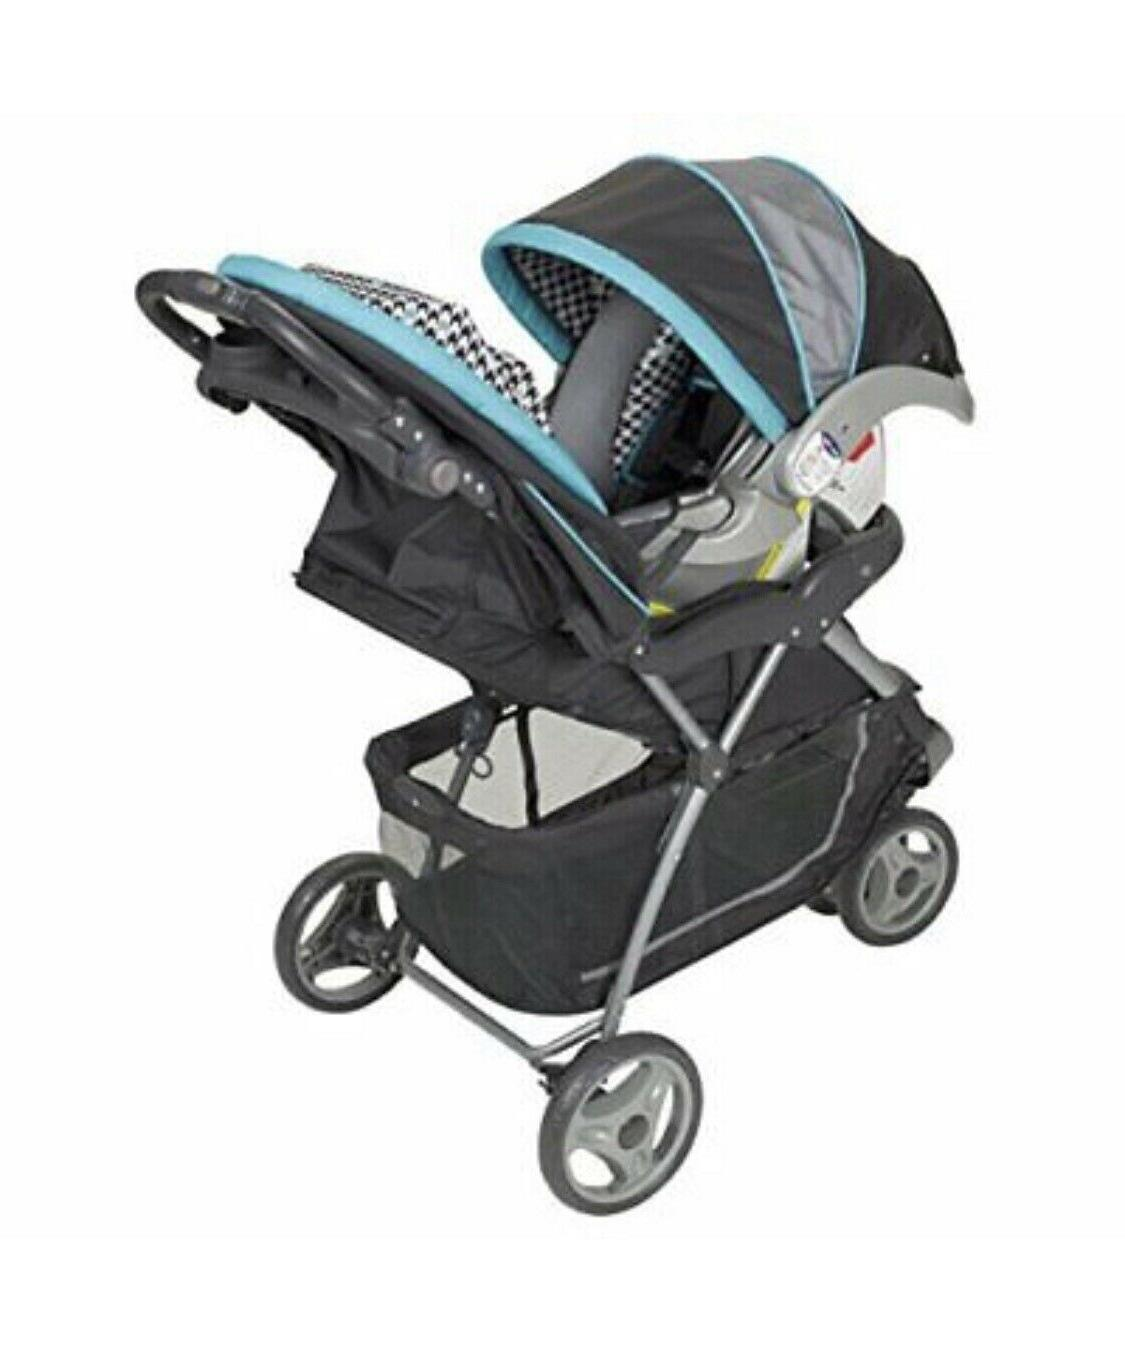 5 Travel Tooth Stroller